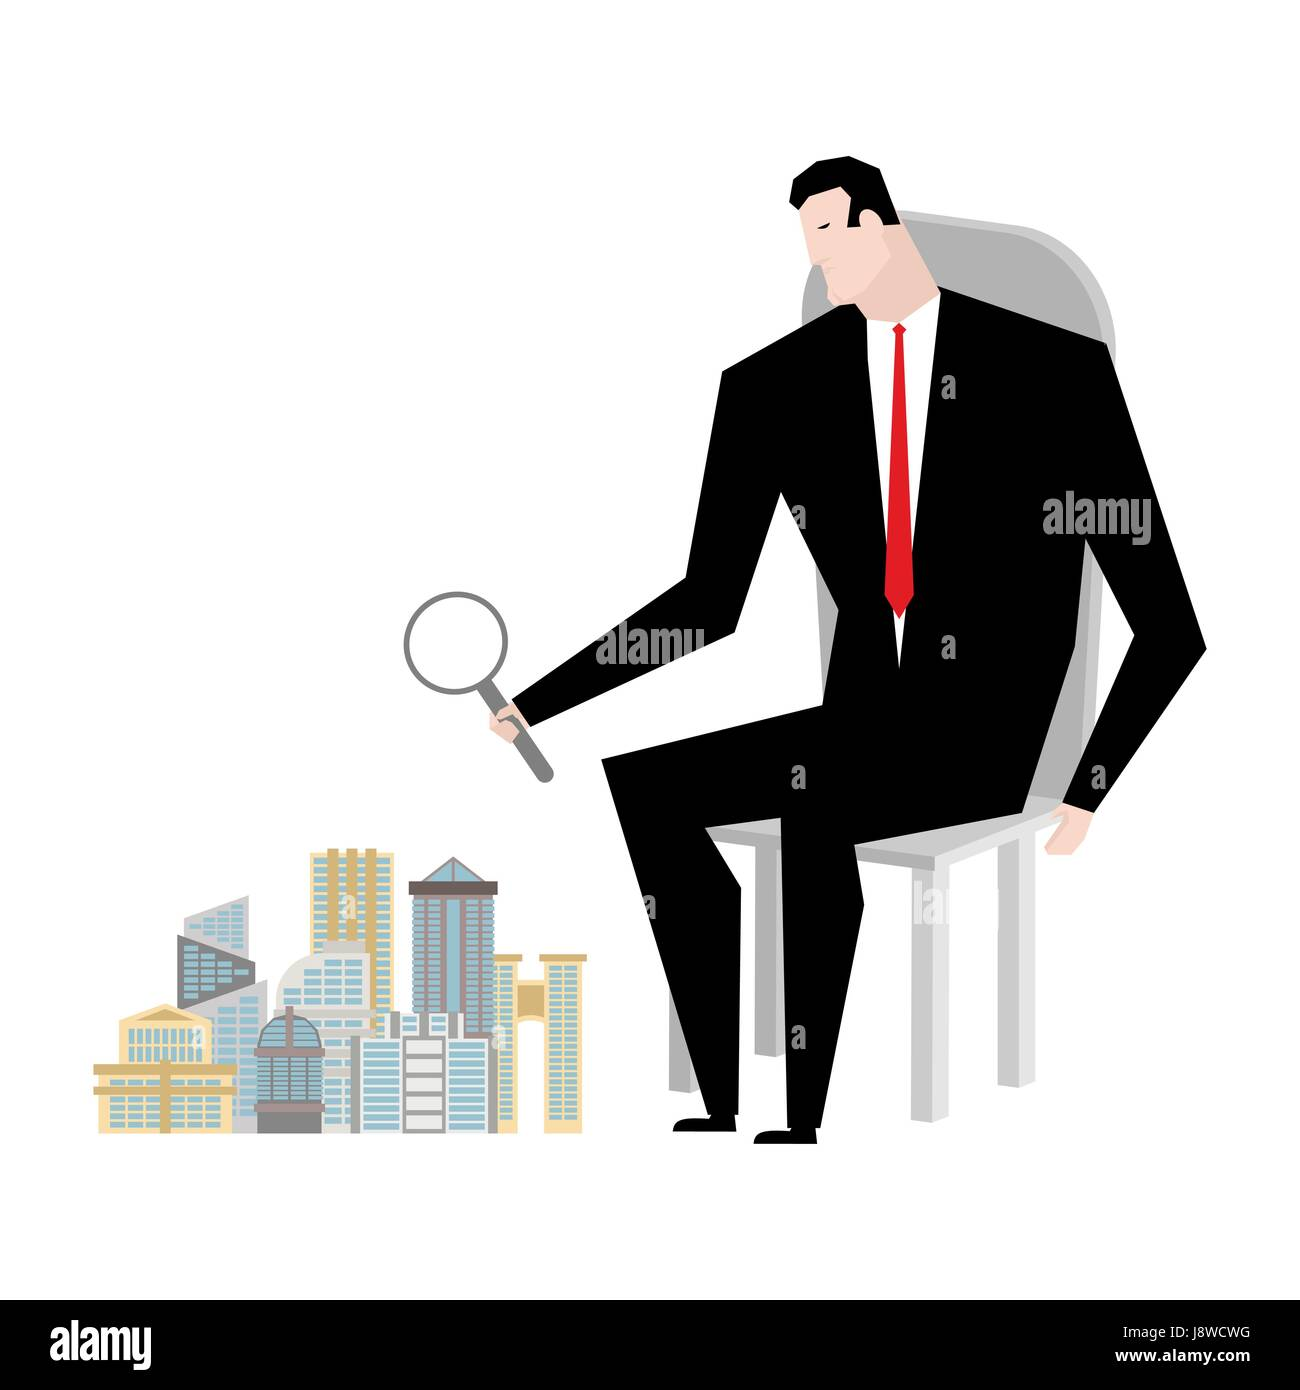 Mayor sees city through magnifying glass. head of town looks at buildings - Stock Vector